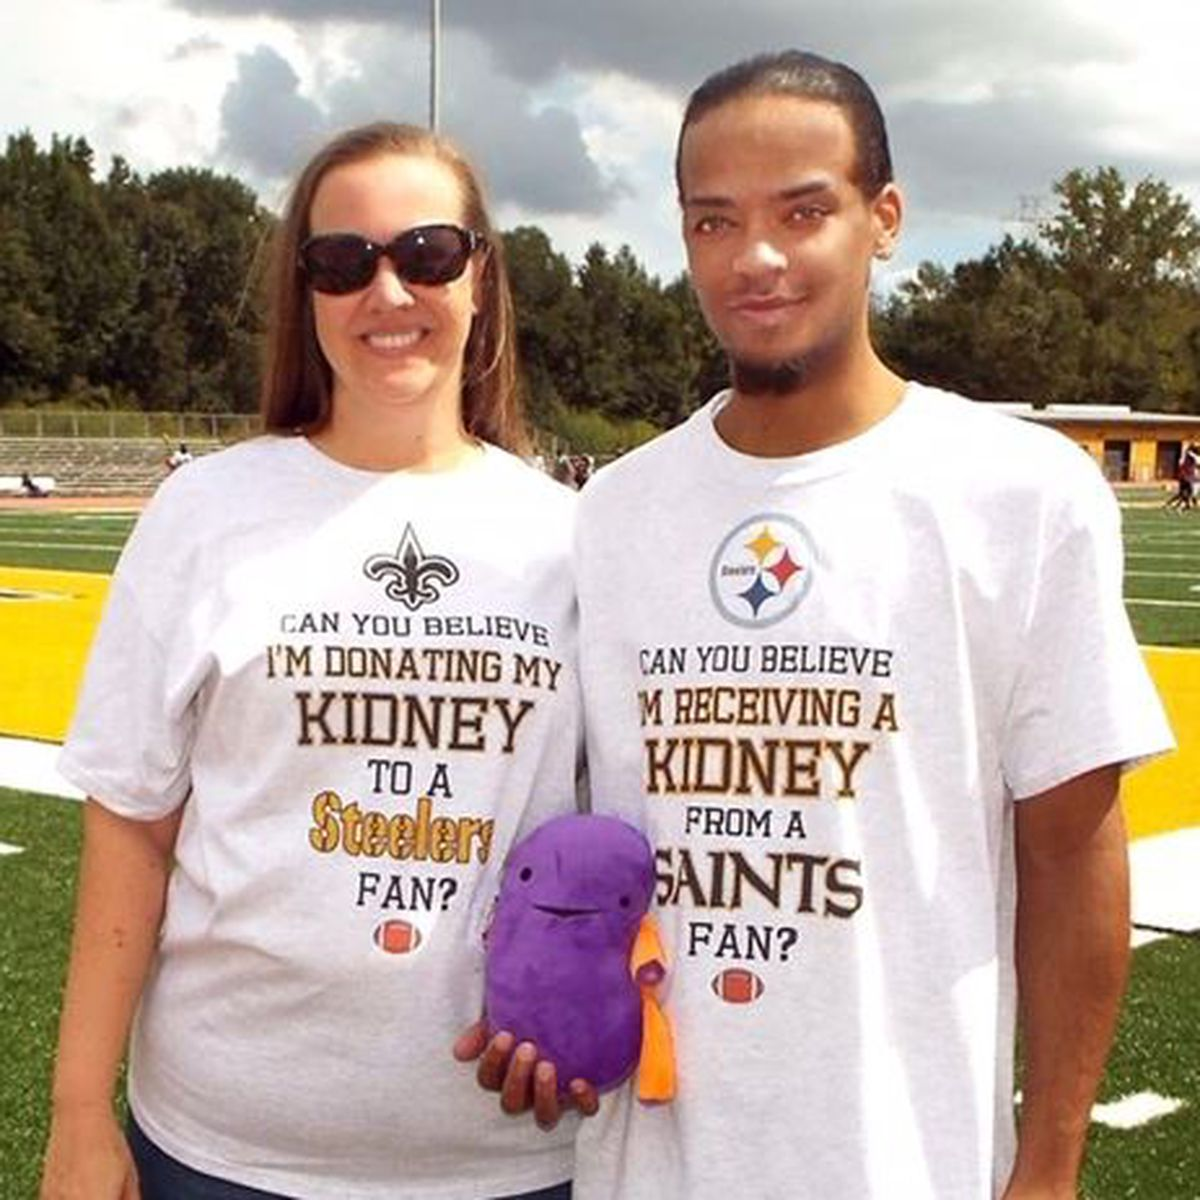 Gr8 Neighbor: Woman donates kidney to man in need